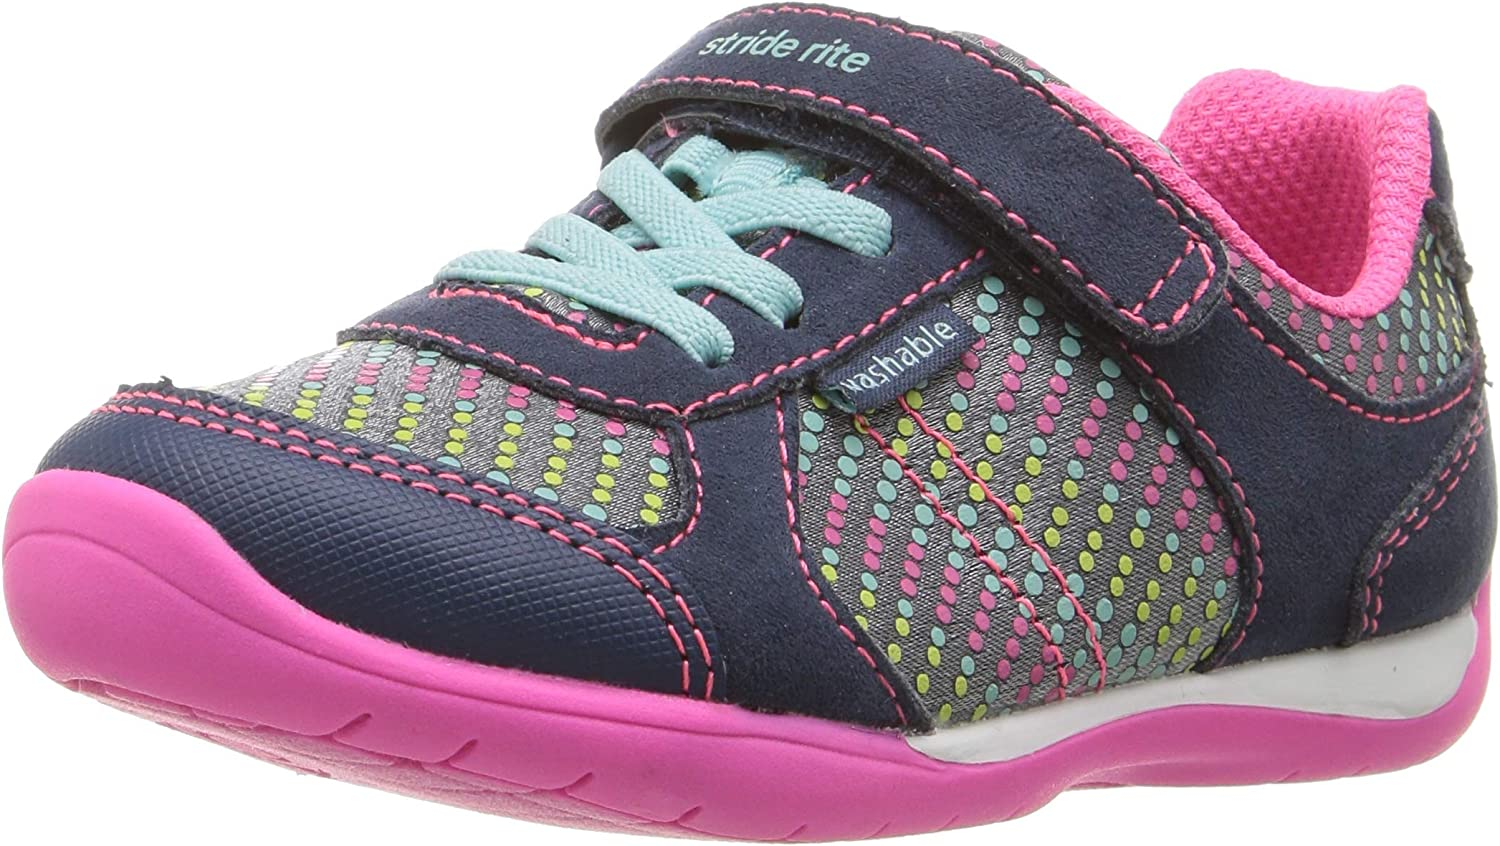 Stride Rite Toddler and Little Girls Molly Mary Jane Shoe